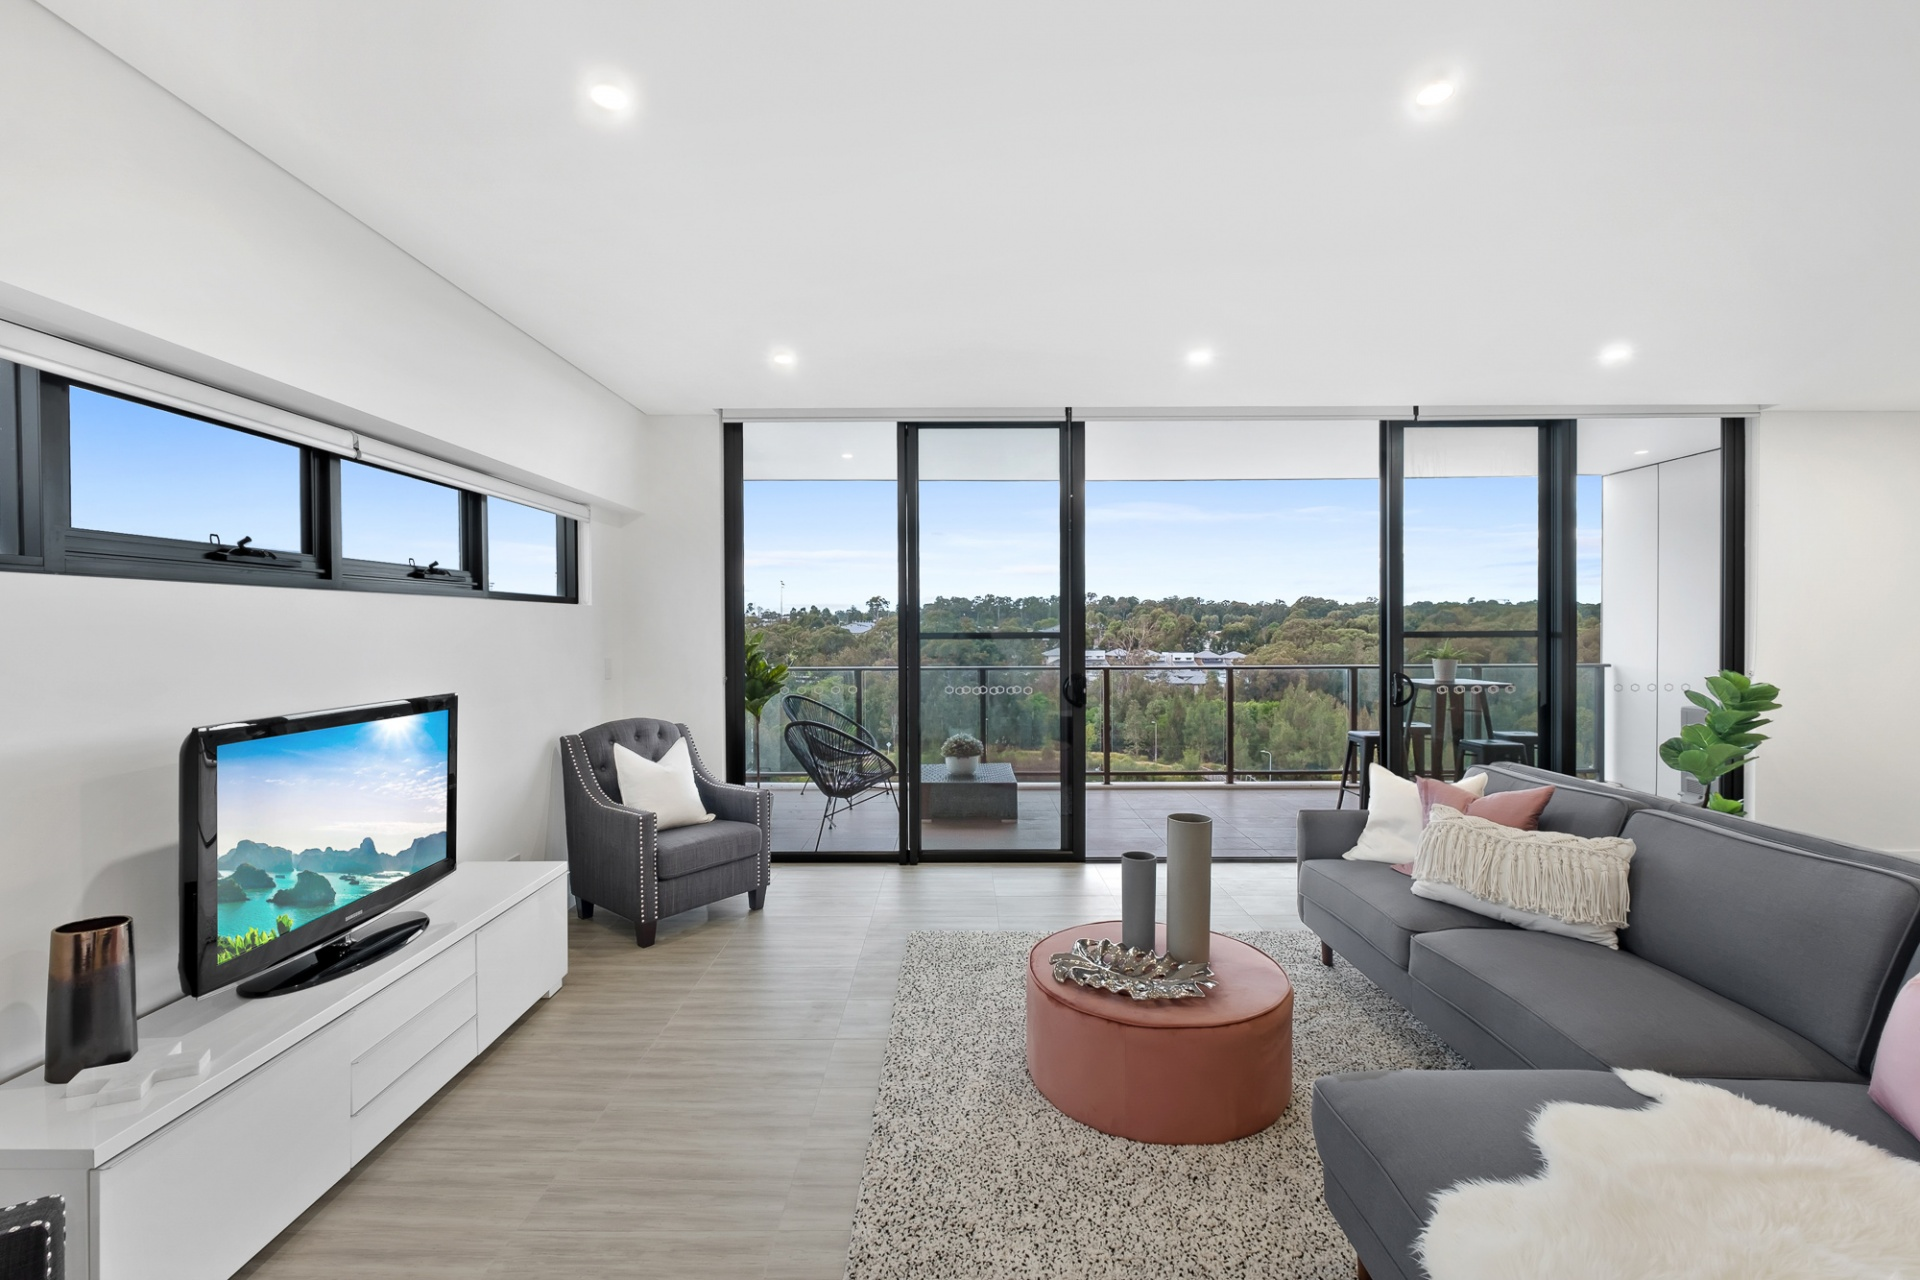 3 Bedrooms, Apartment, Sold , Caddies Boulevard, 2 Bathrooms, Listing ID 1313, Rouse Hill, NSW, Australia,